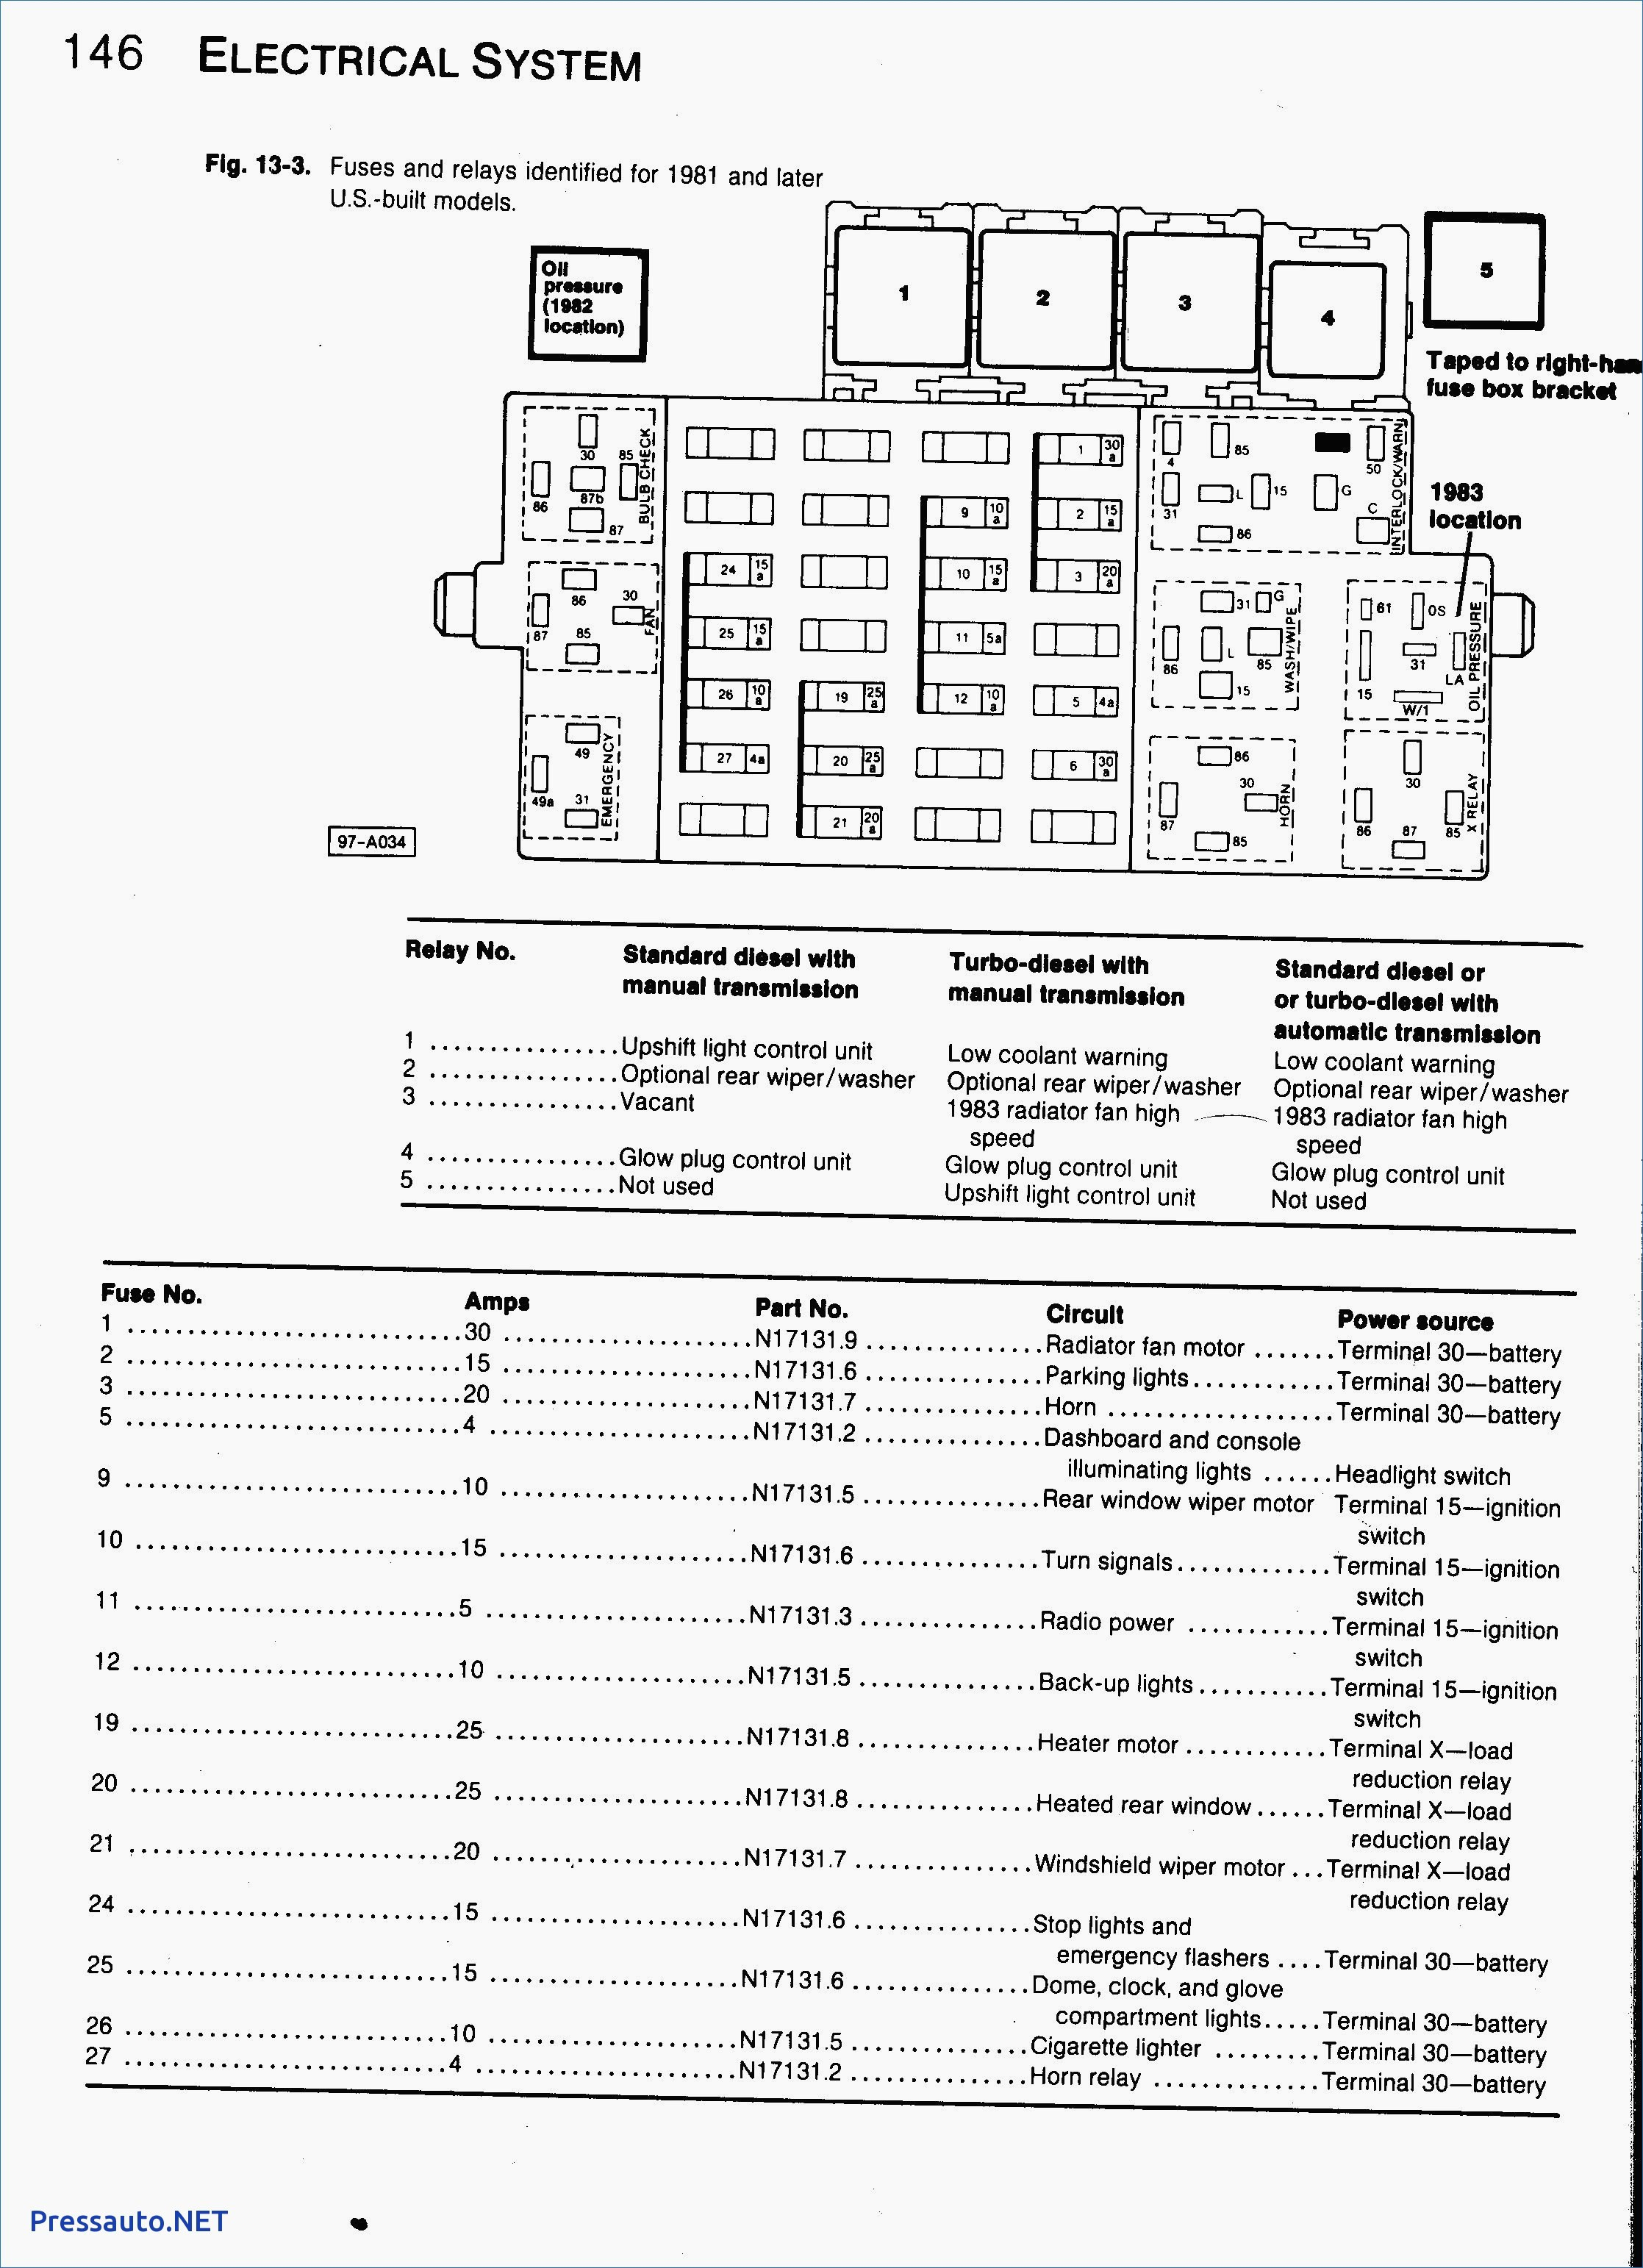 2000 Volkswagen Passat Engine Diagram 2012 Volkswagen Jetta Fuse Diagram Wiring Diagrams Schematics • Of 2000 Volkswagen Passat Engine Diagram 1967 Vw Fuse Box Diagram Experts Wiring Diagram •